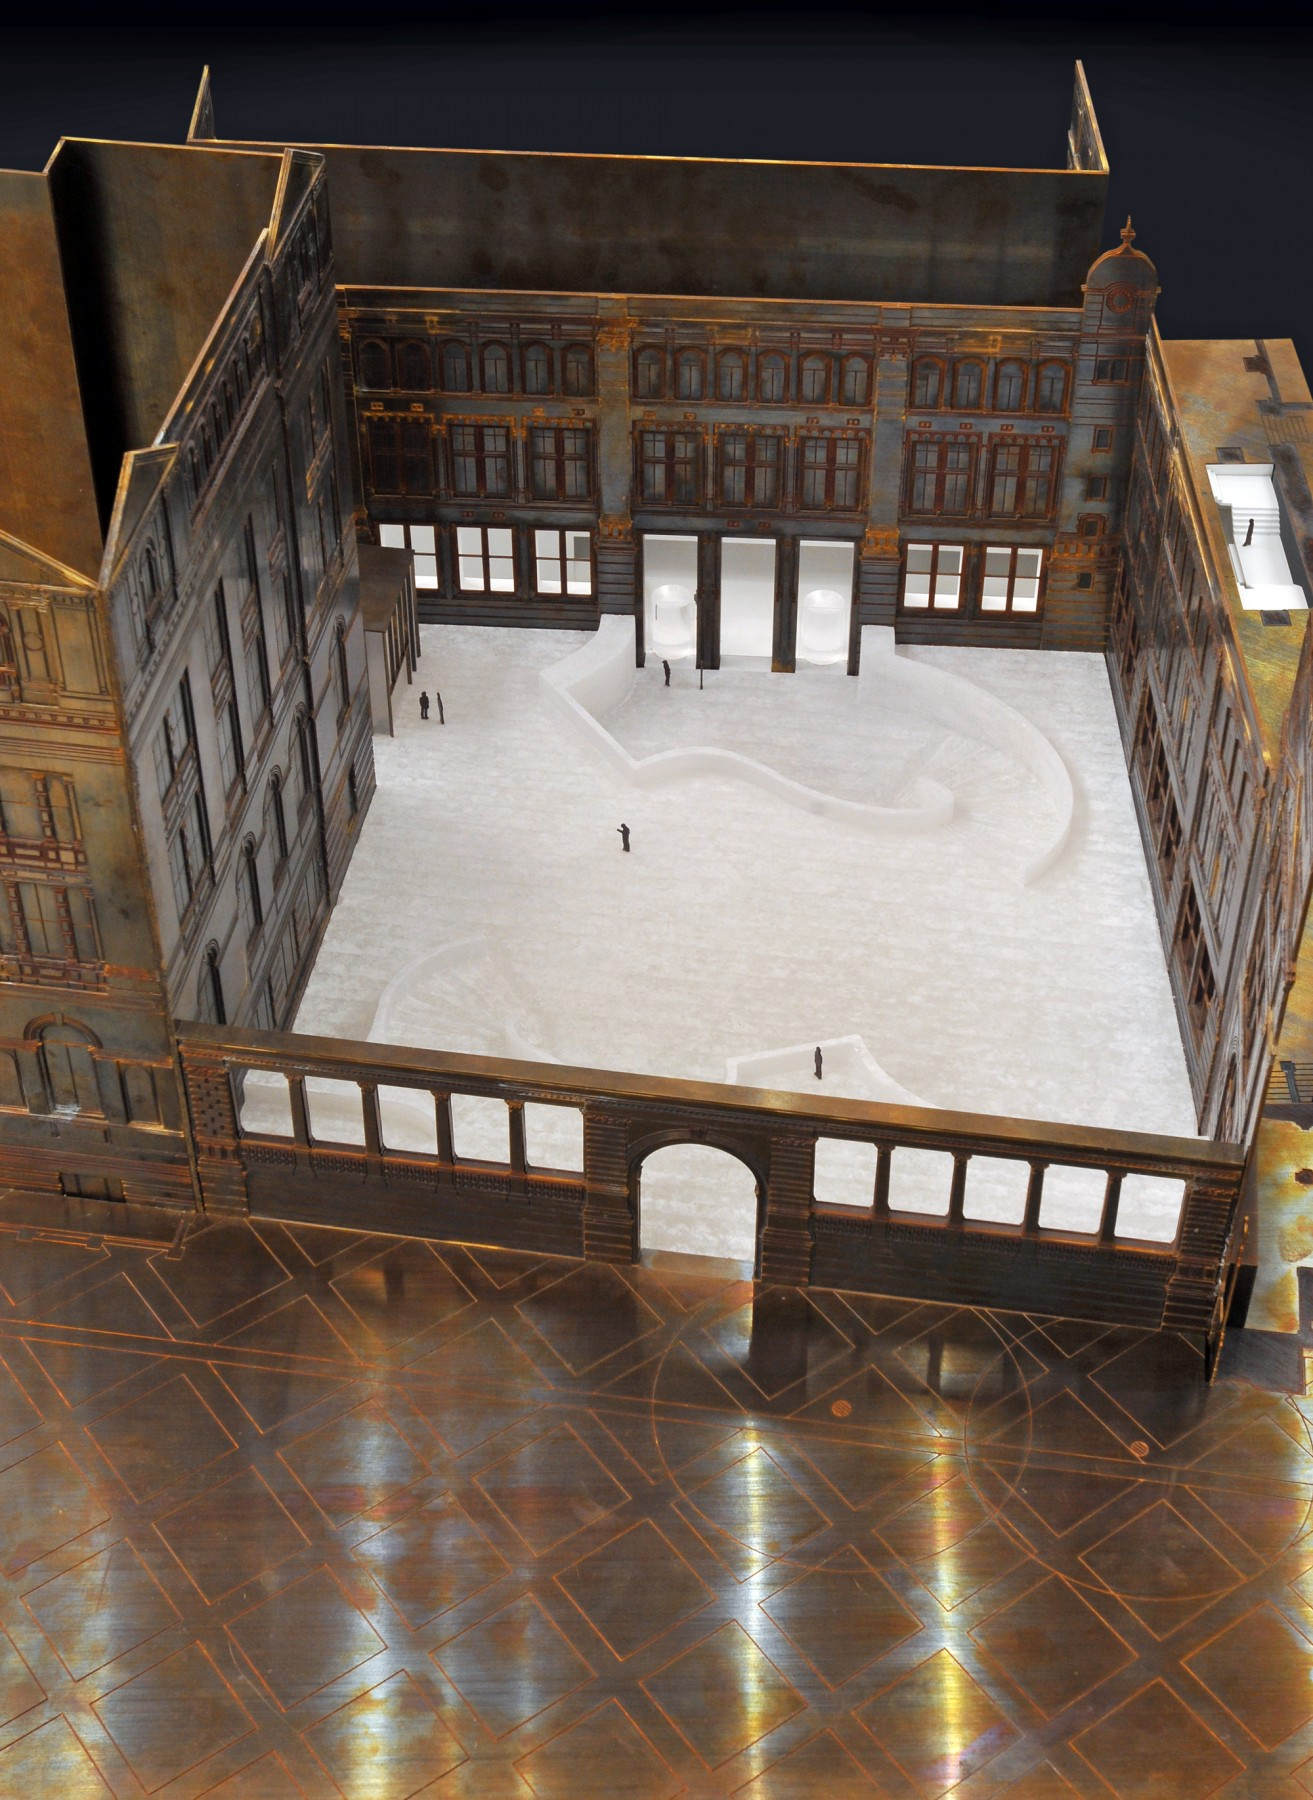 Victoria-and-Albert-Museum-V&A-competition-Exhibition-Road-gallery-London-Sir-Aston-Webb-design-short-list-Jamie-Fobert-architects-model-3